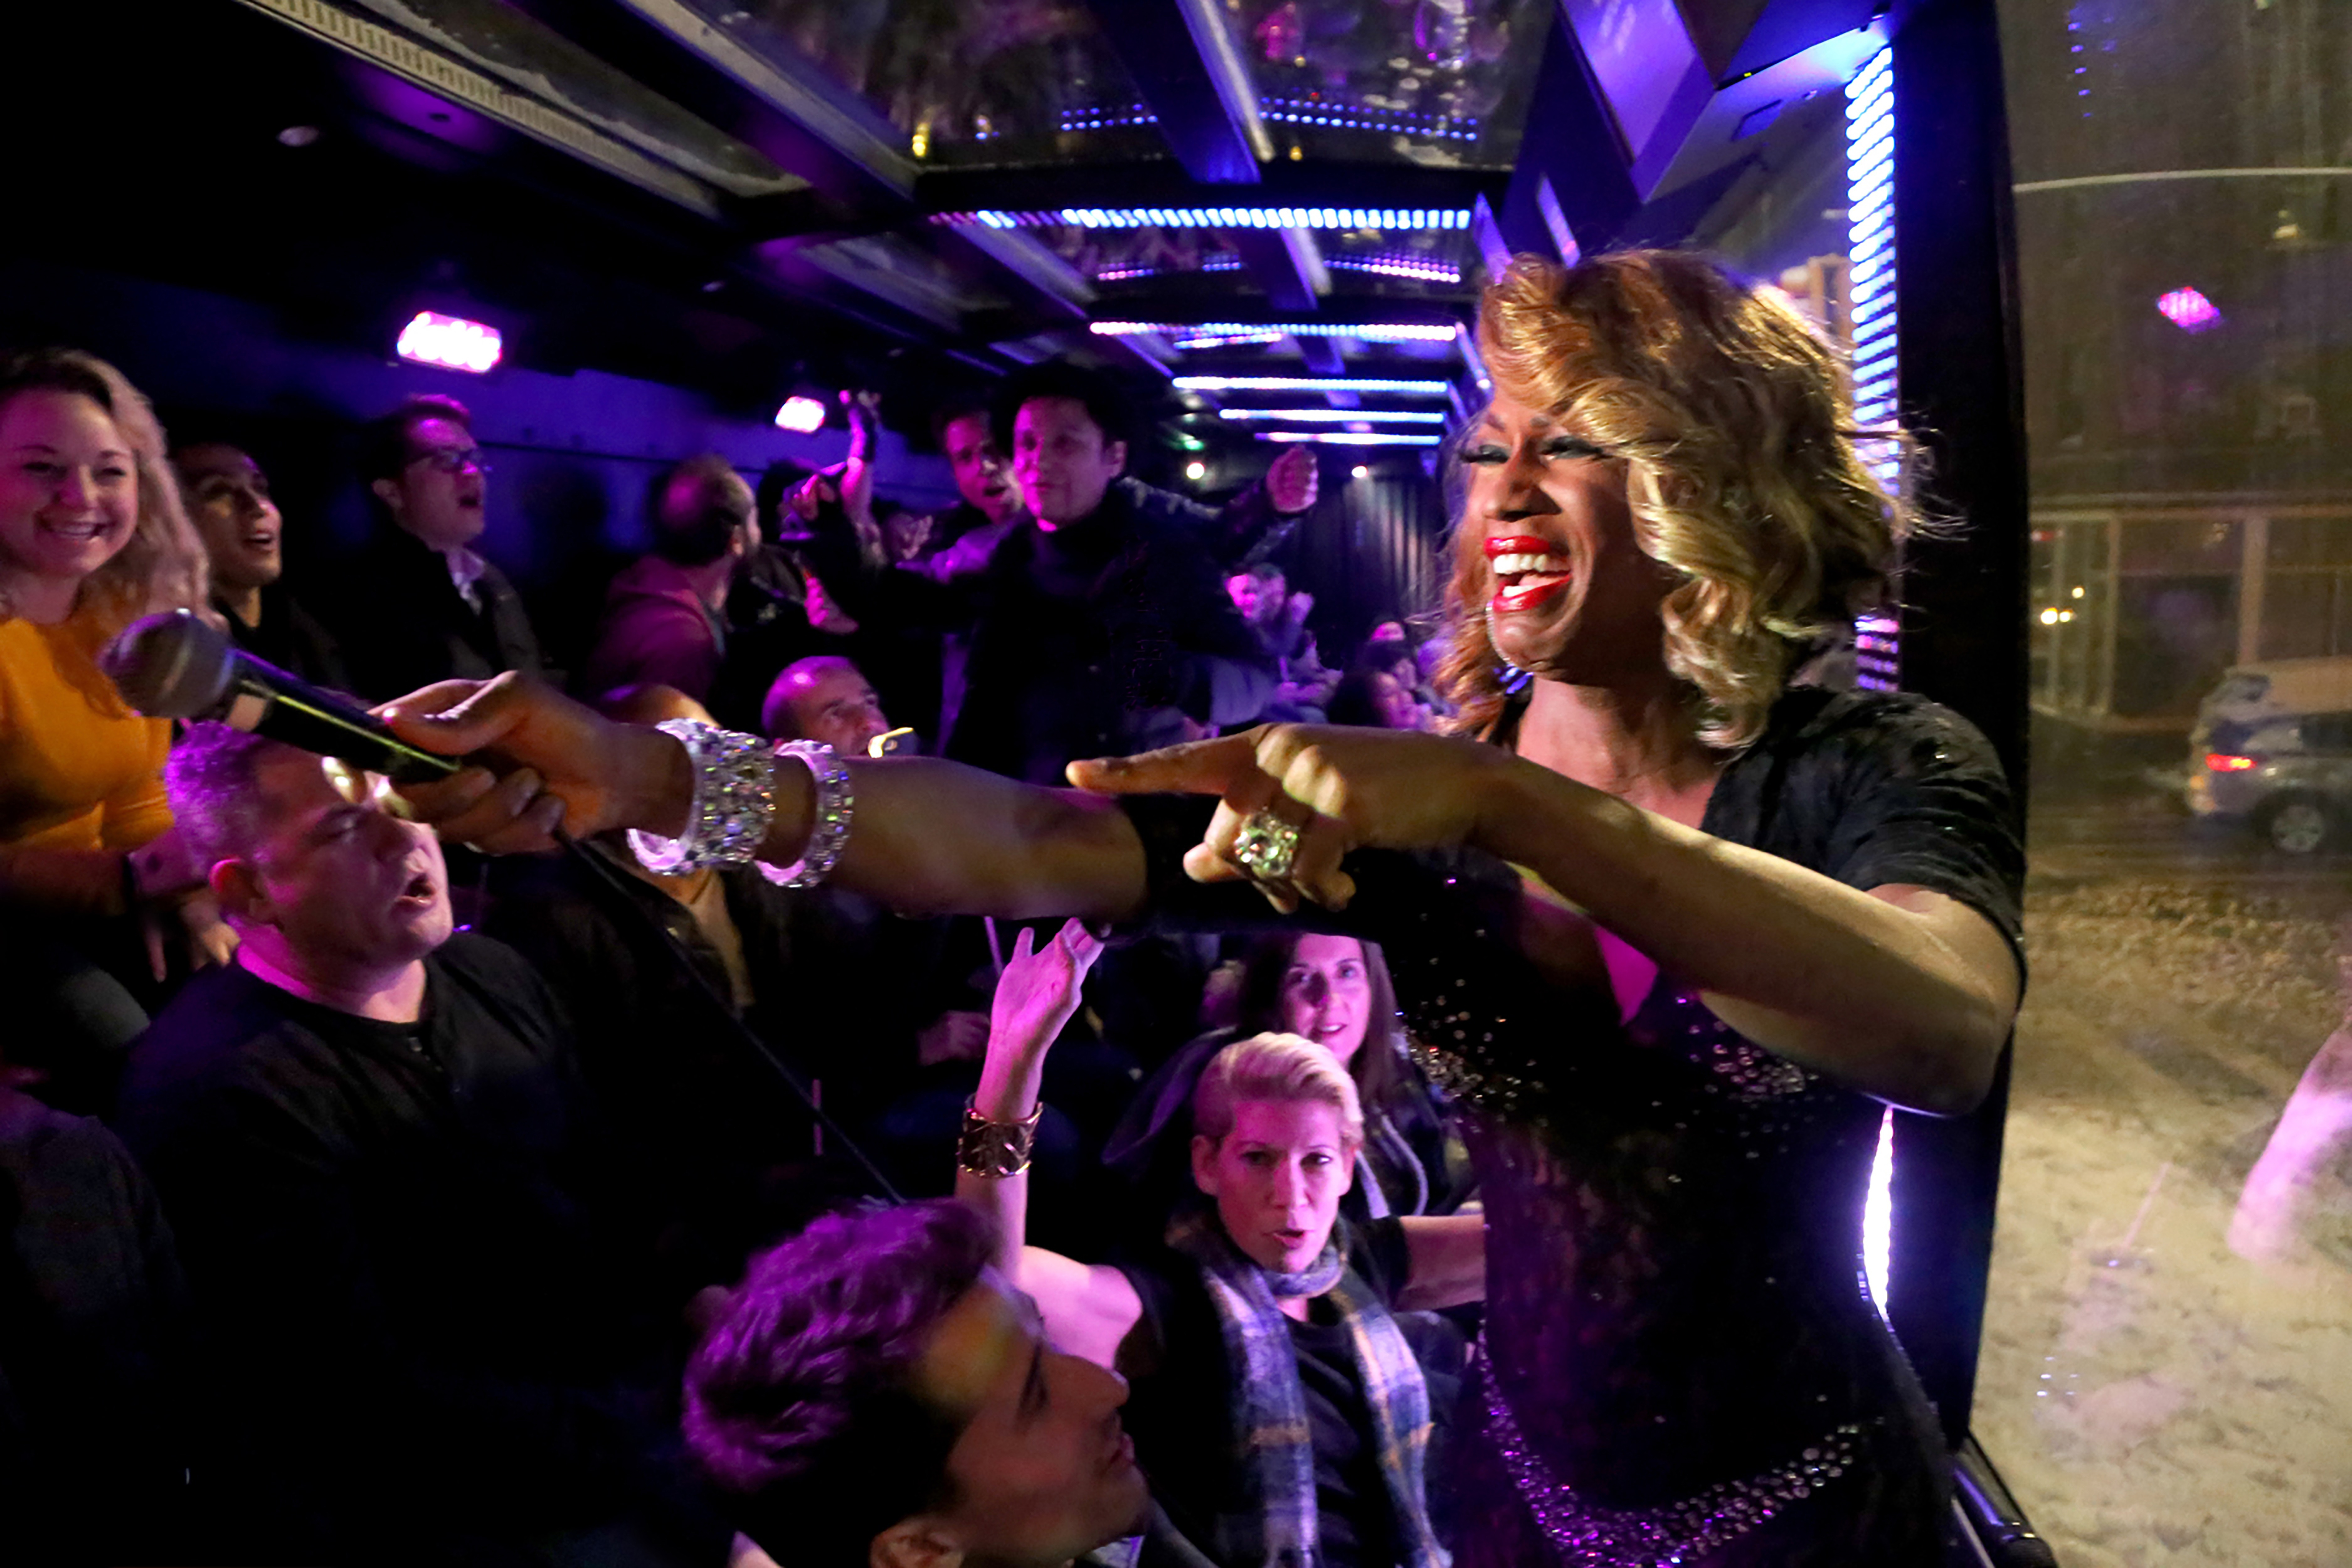 Queen of THE RIDE - Drag Queen Host & Guests onboard THE RIDE bus